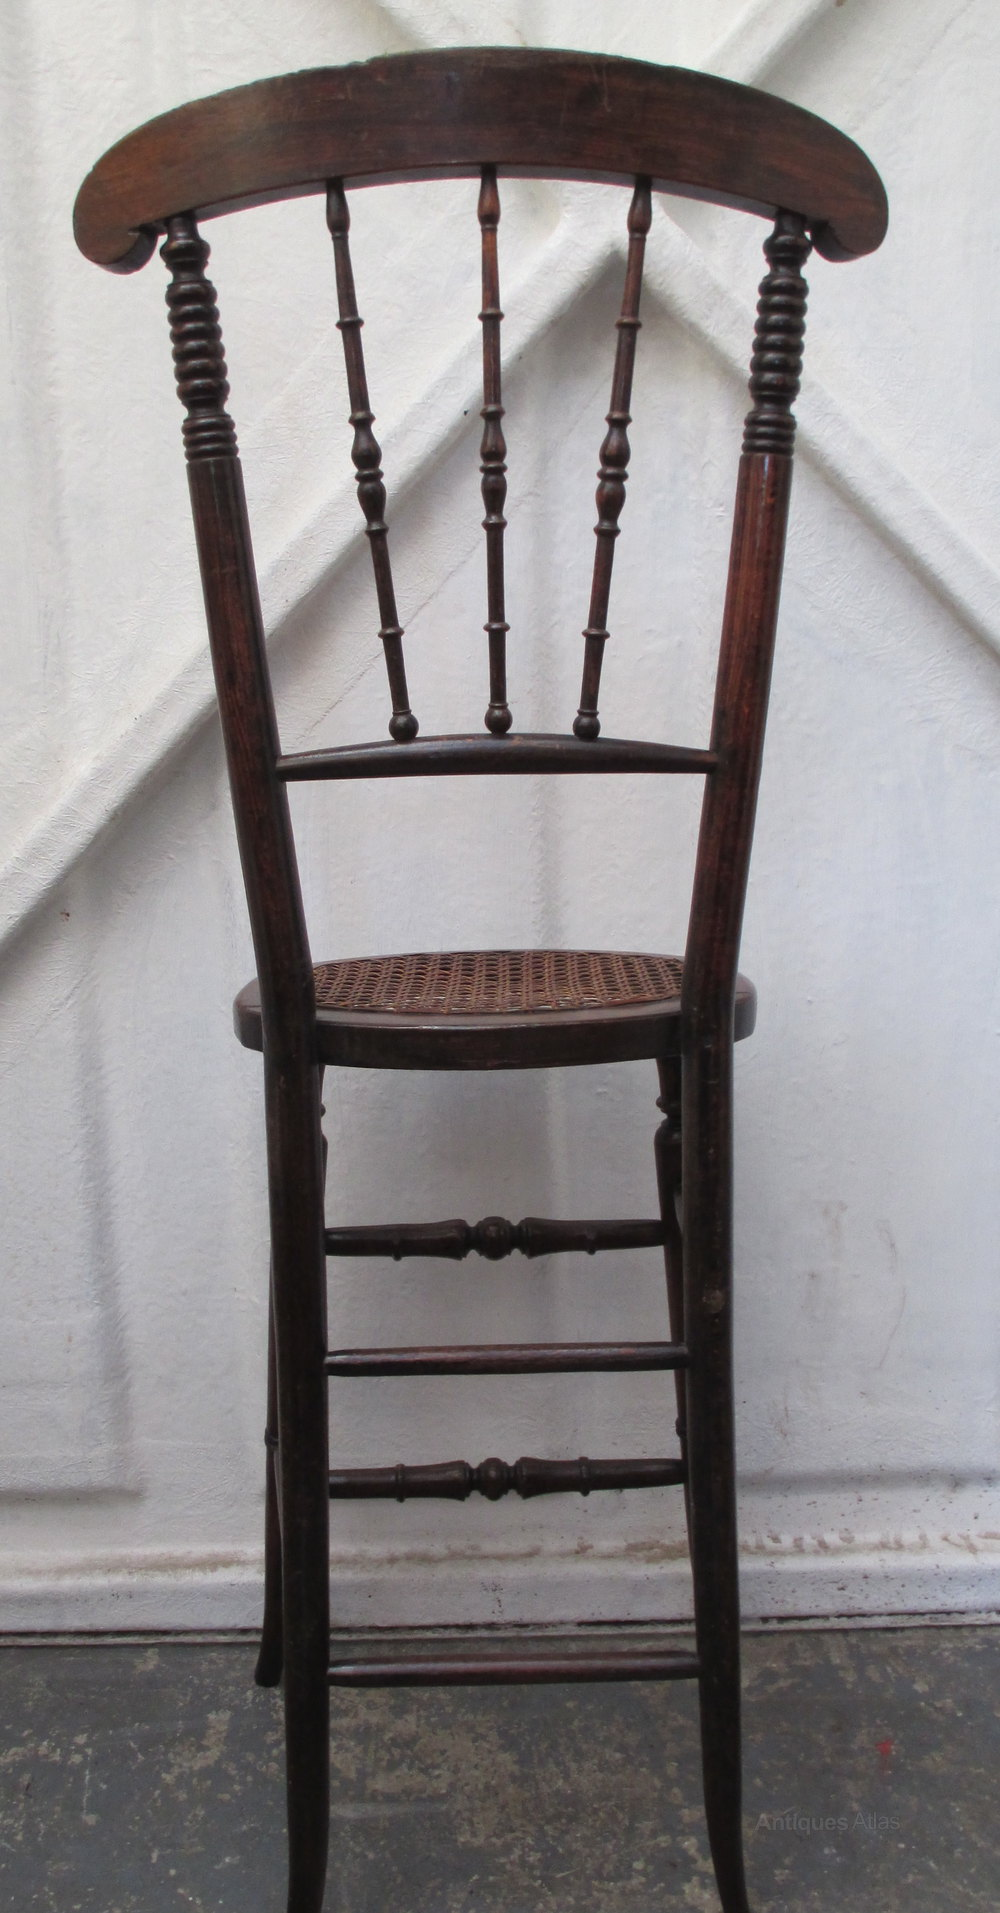 cane back chairs antique dining childs correction chair mid 19thc. - antiques atlas